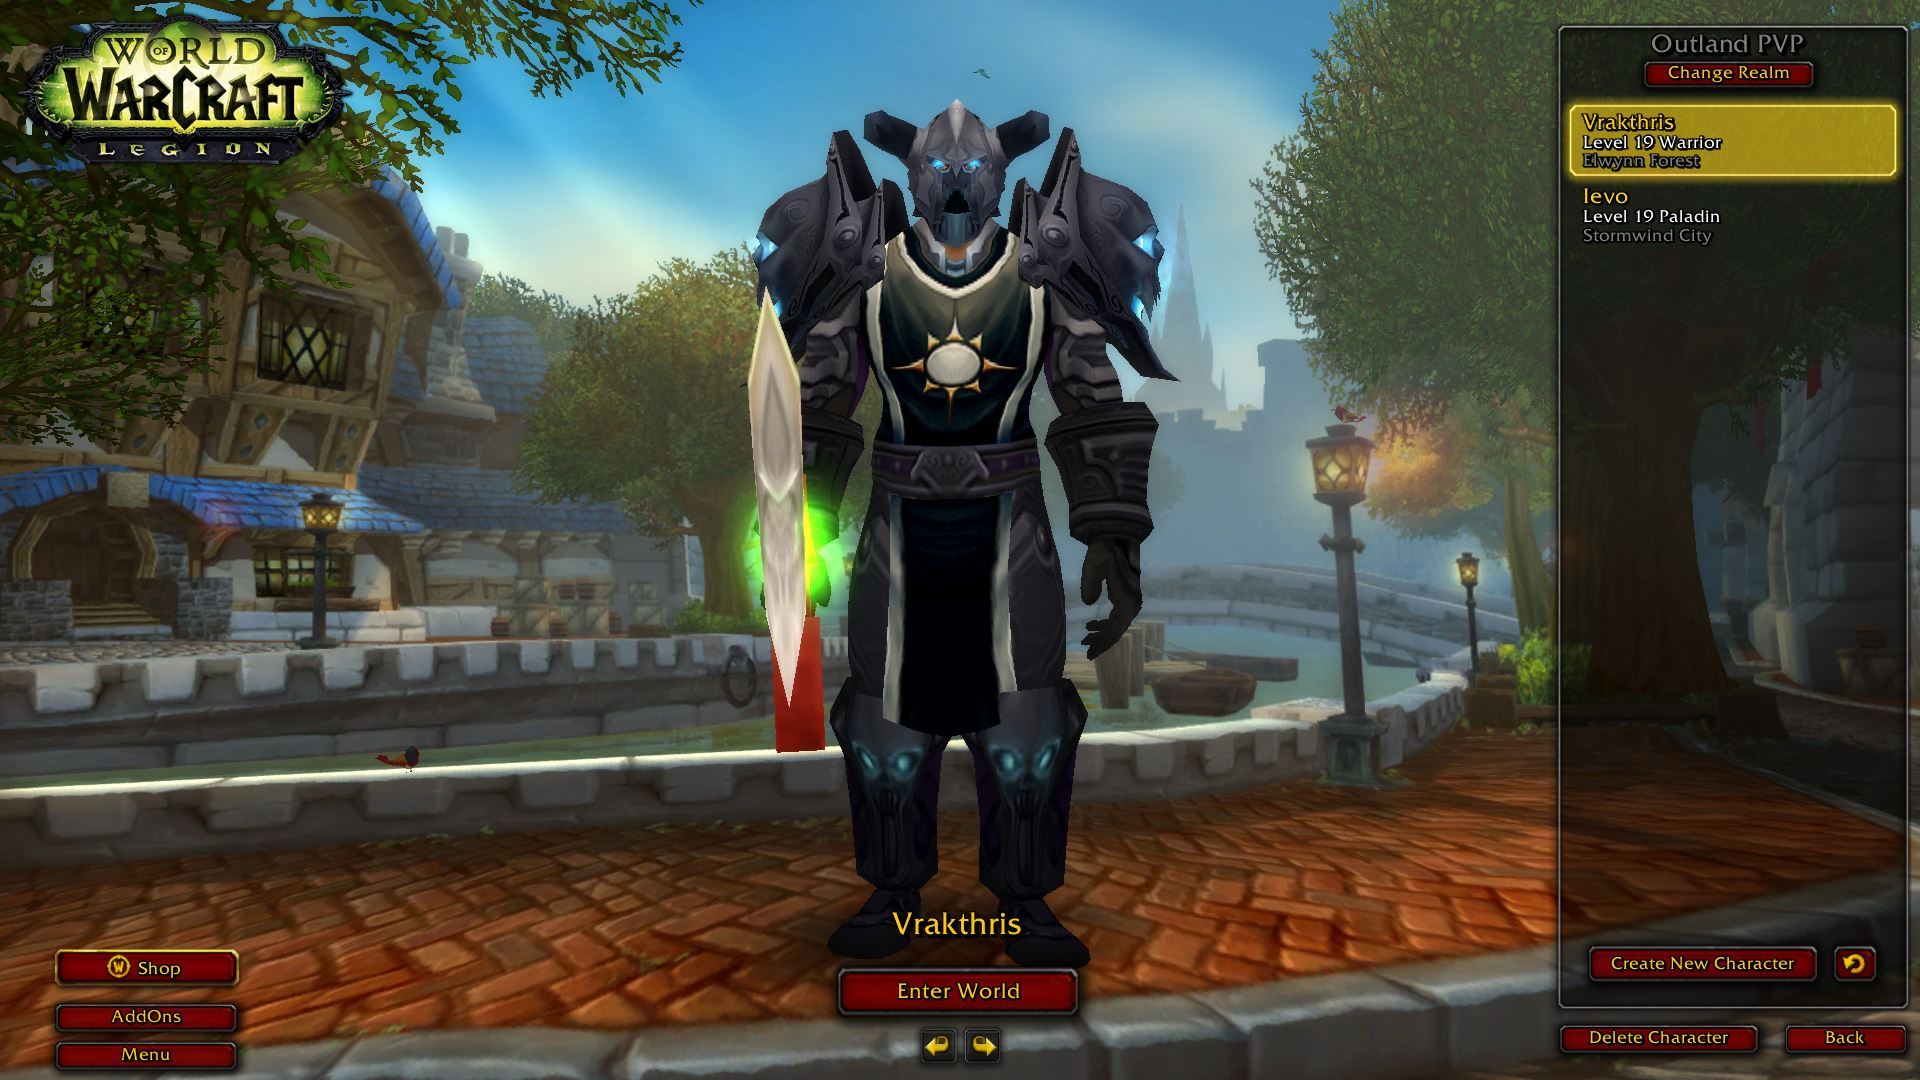 19 warrior twink items